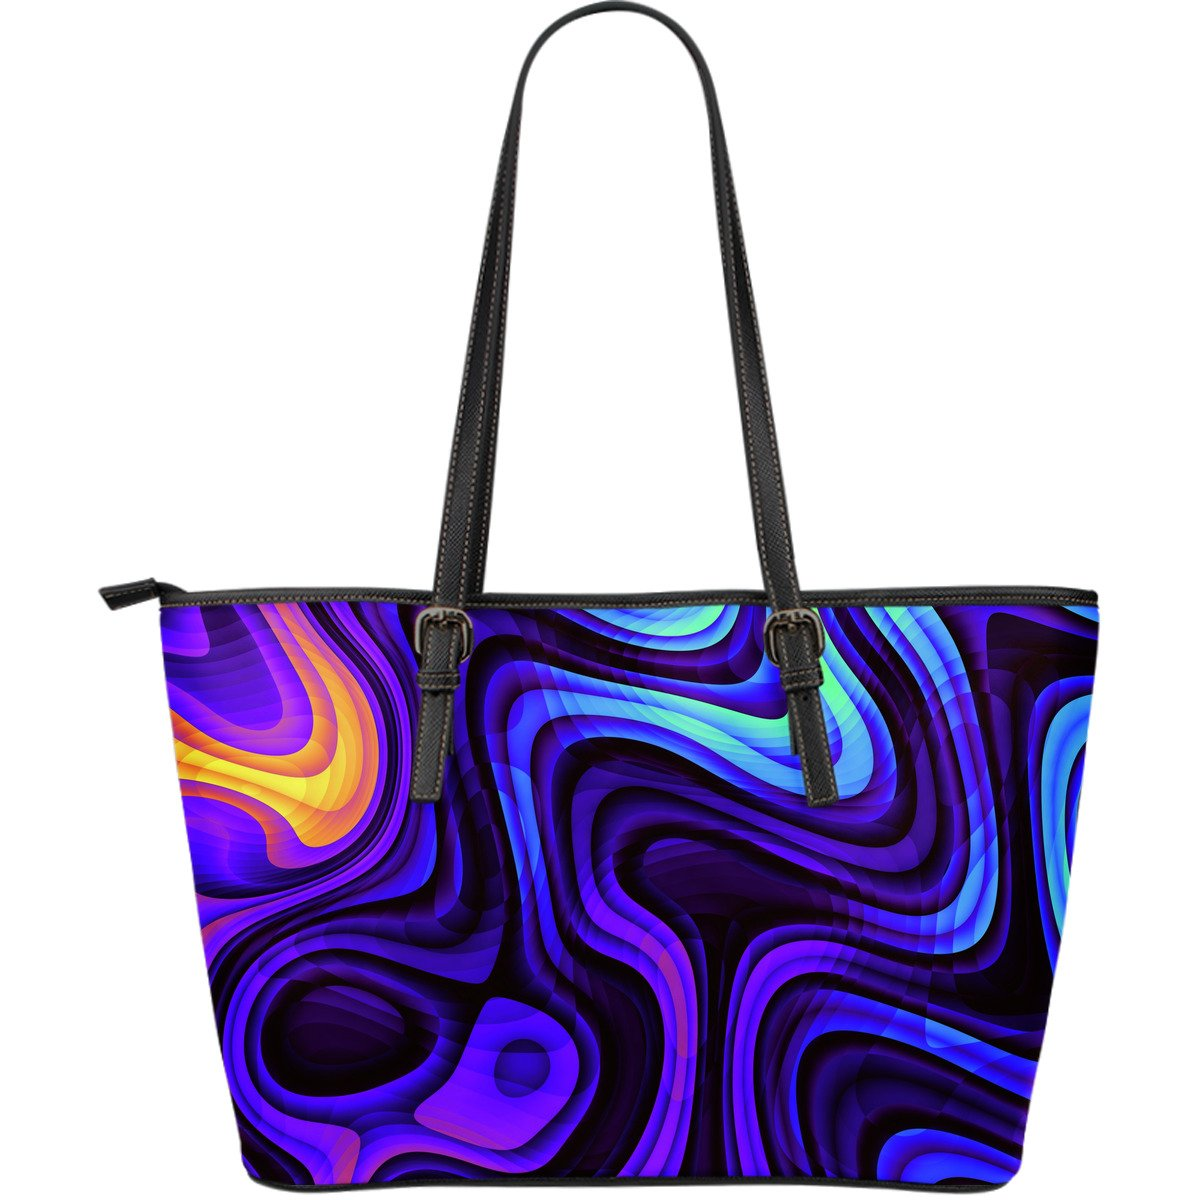 Dark Psychedelic Trippy Print Leather Tote Bag GearFrost